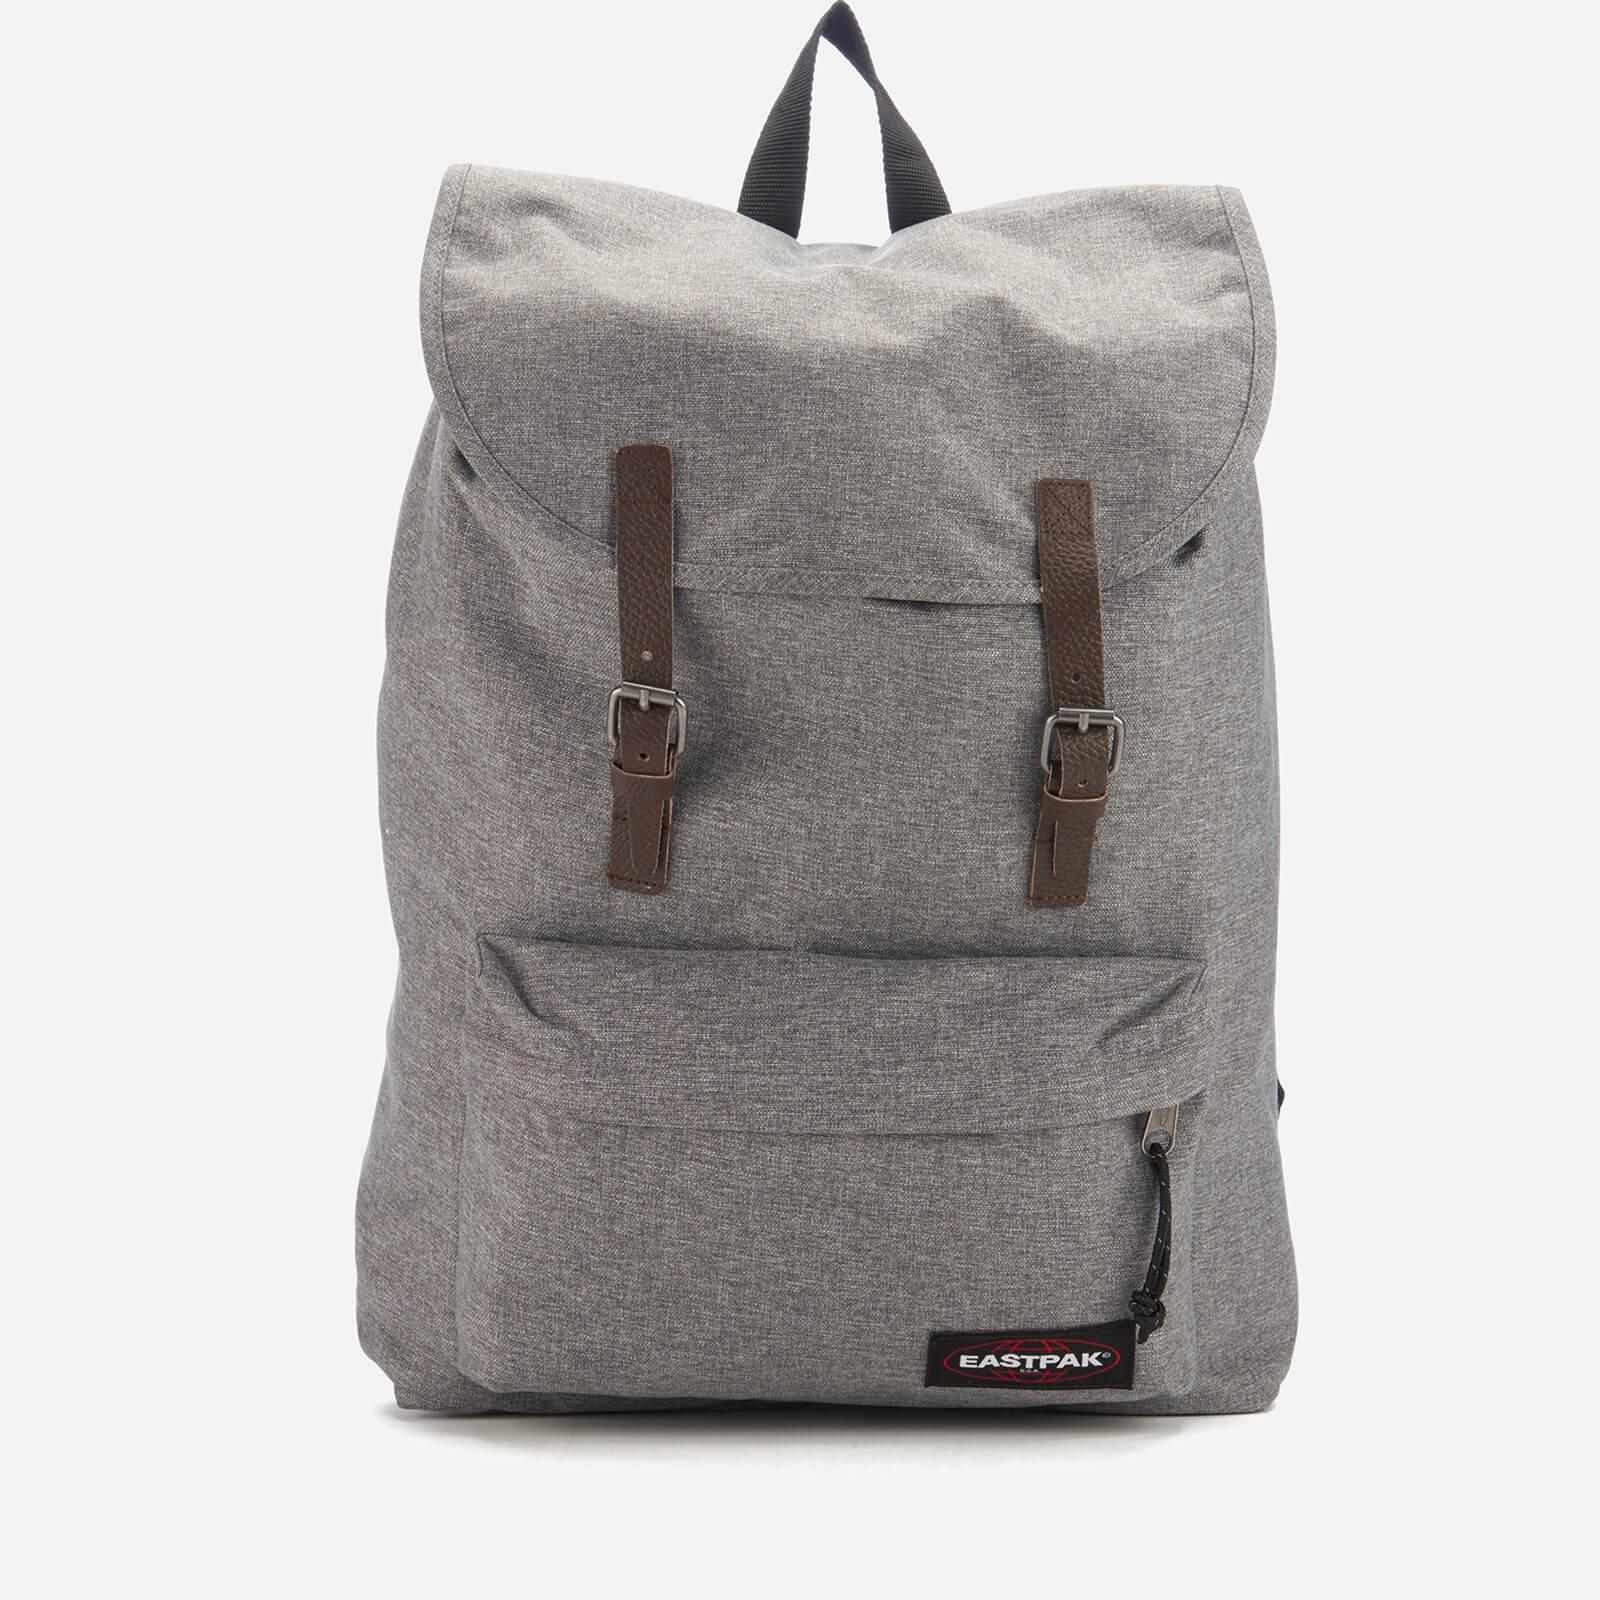 Eastpak Men s London Backpack in Gray for Men - Lyst 74907a55e3e74